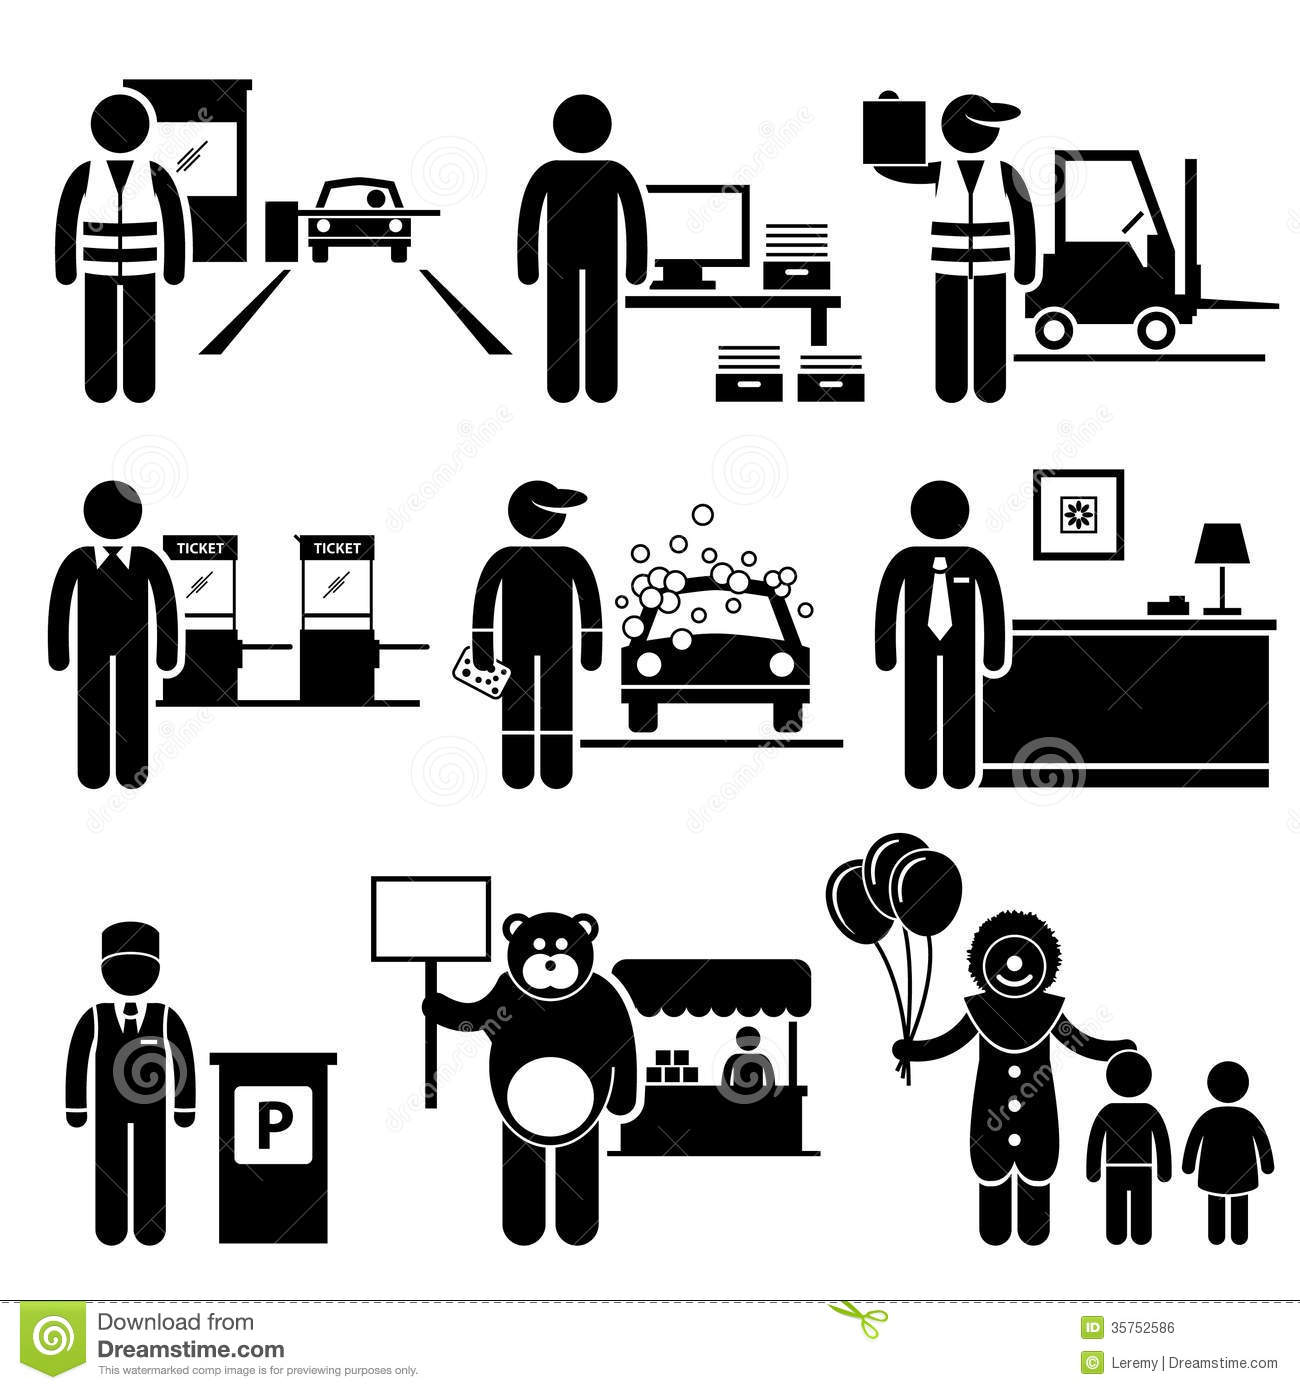 Lower class people clipart.